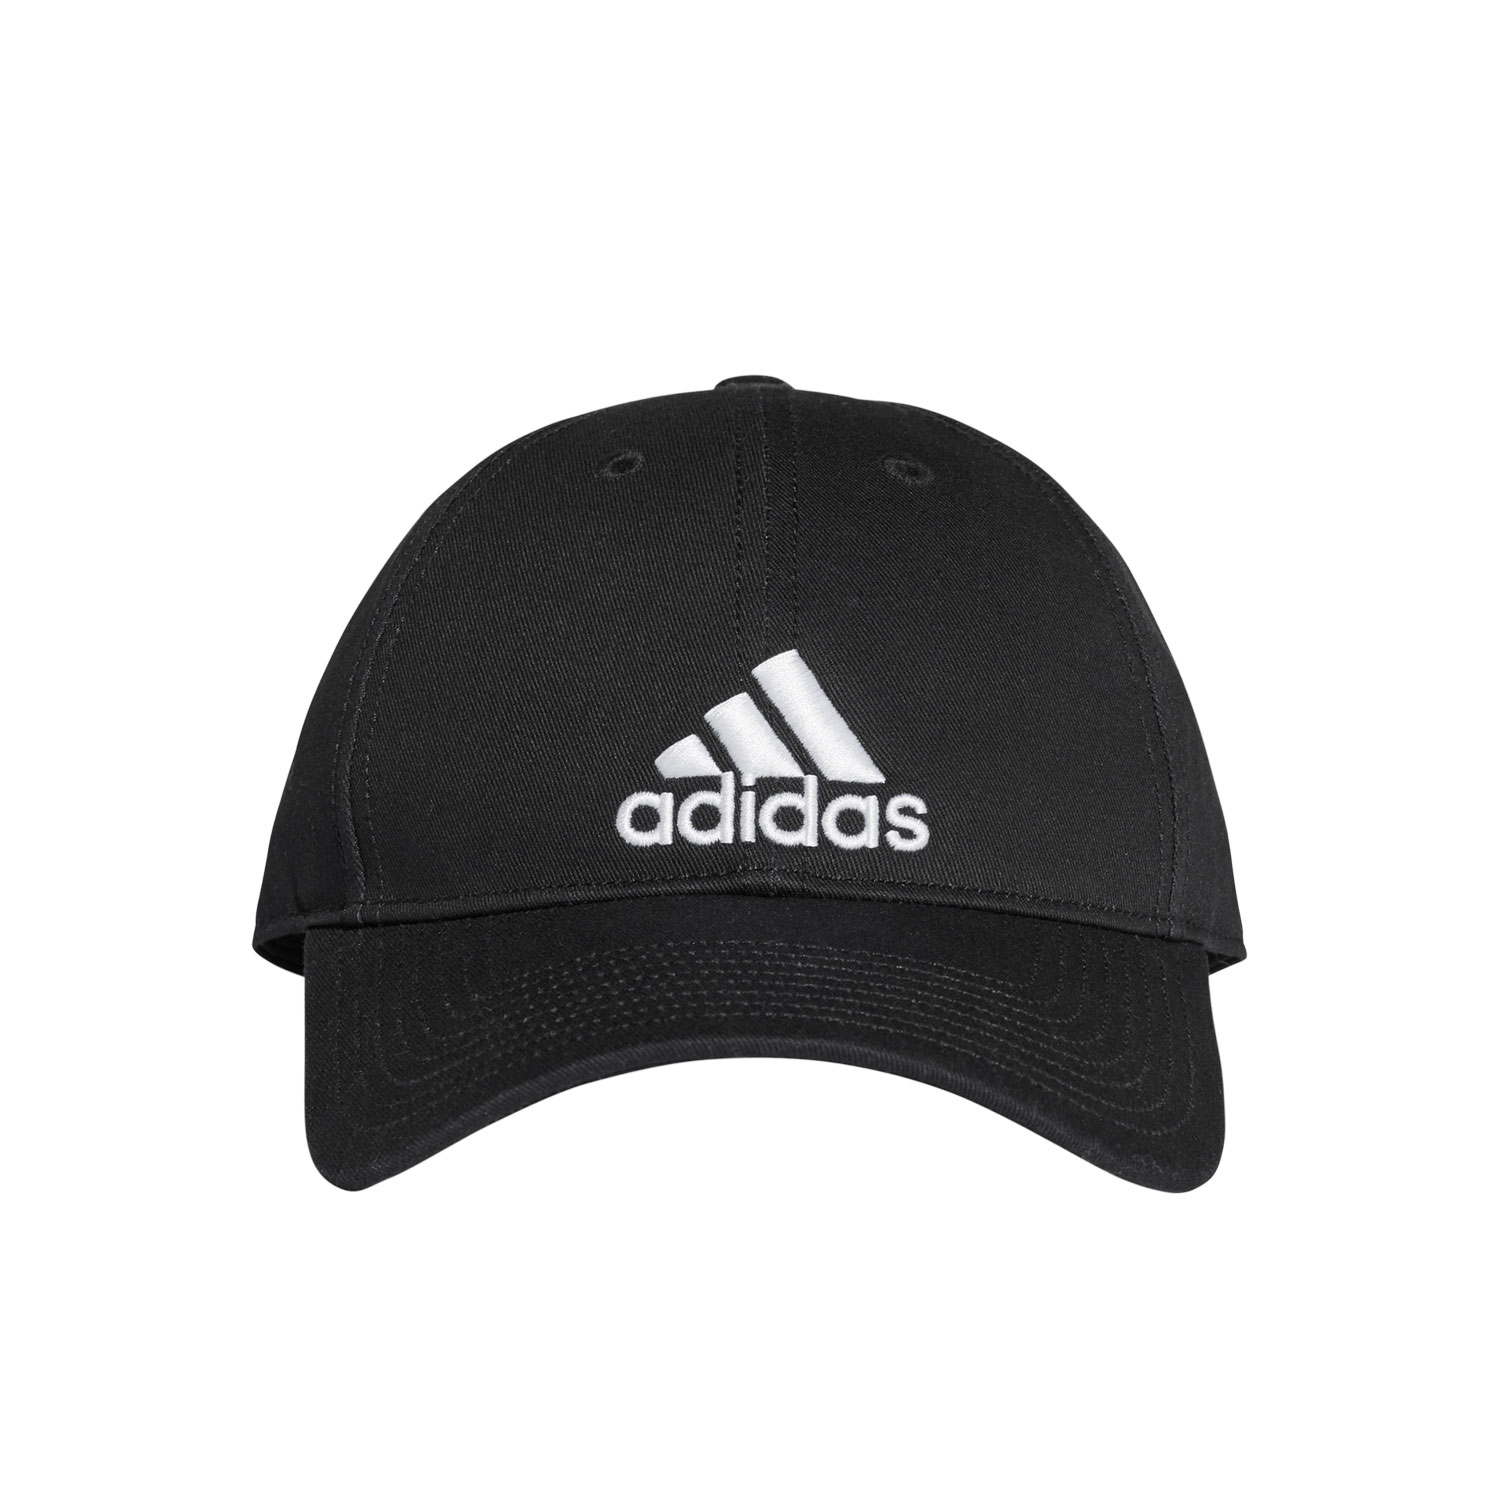 Adidas Classic Six Panel Cap - Black/White